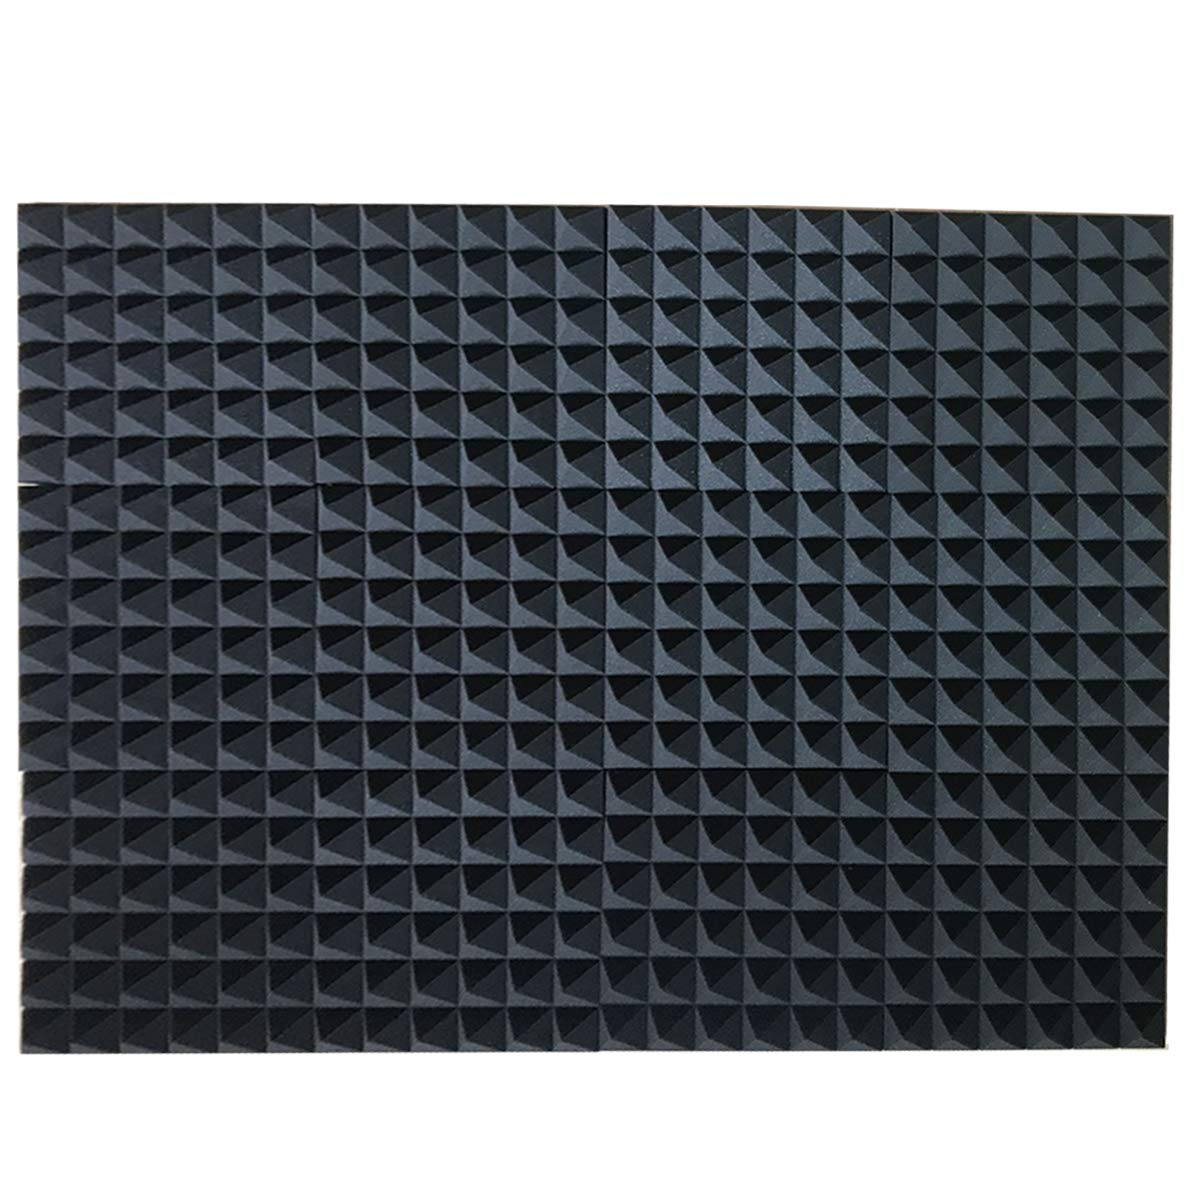 12 Pack Set Acoustic Foam Panels, Studio Wedge Tiles, 2'' X 12'' X 12'' Acoustic Foam Sound Absorption Pyramid Studio Treatment Wall Panels